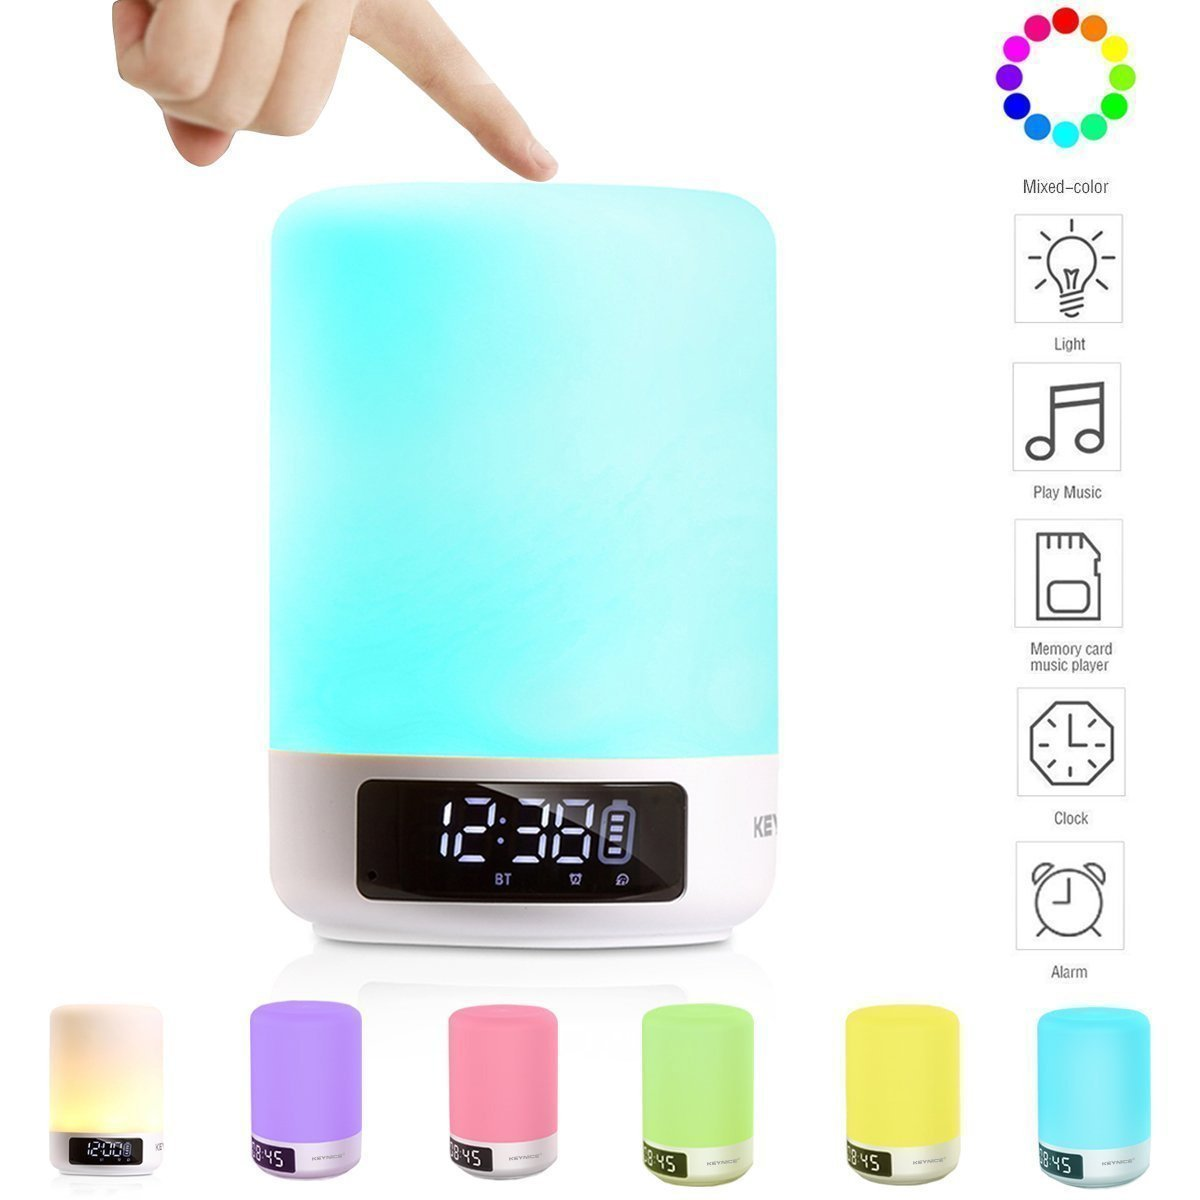 keynice multicolor lampe de chevet tactile portable sans fil bluetooth ebay. Black Bedroom Furniture Sets. Home Design Ideas